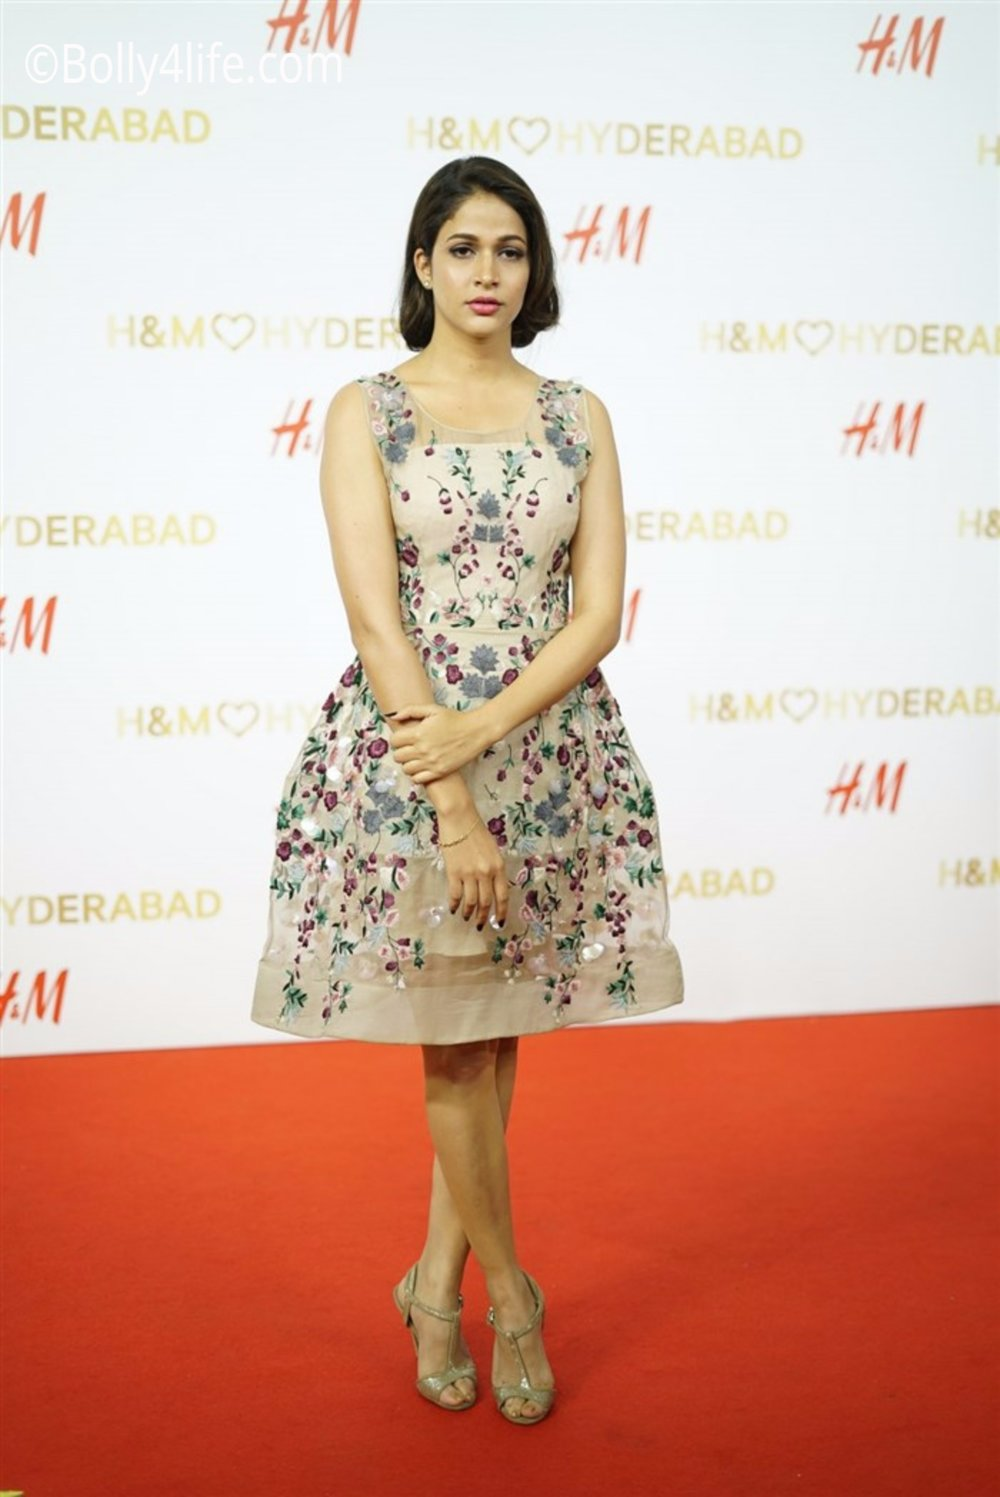 actress-hms-vip-party-inorbit-mall-hyderabad-2d2e5a9.jpg